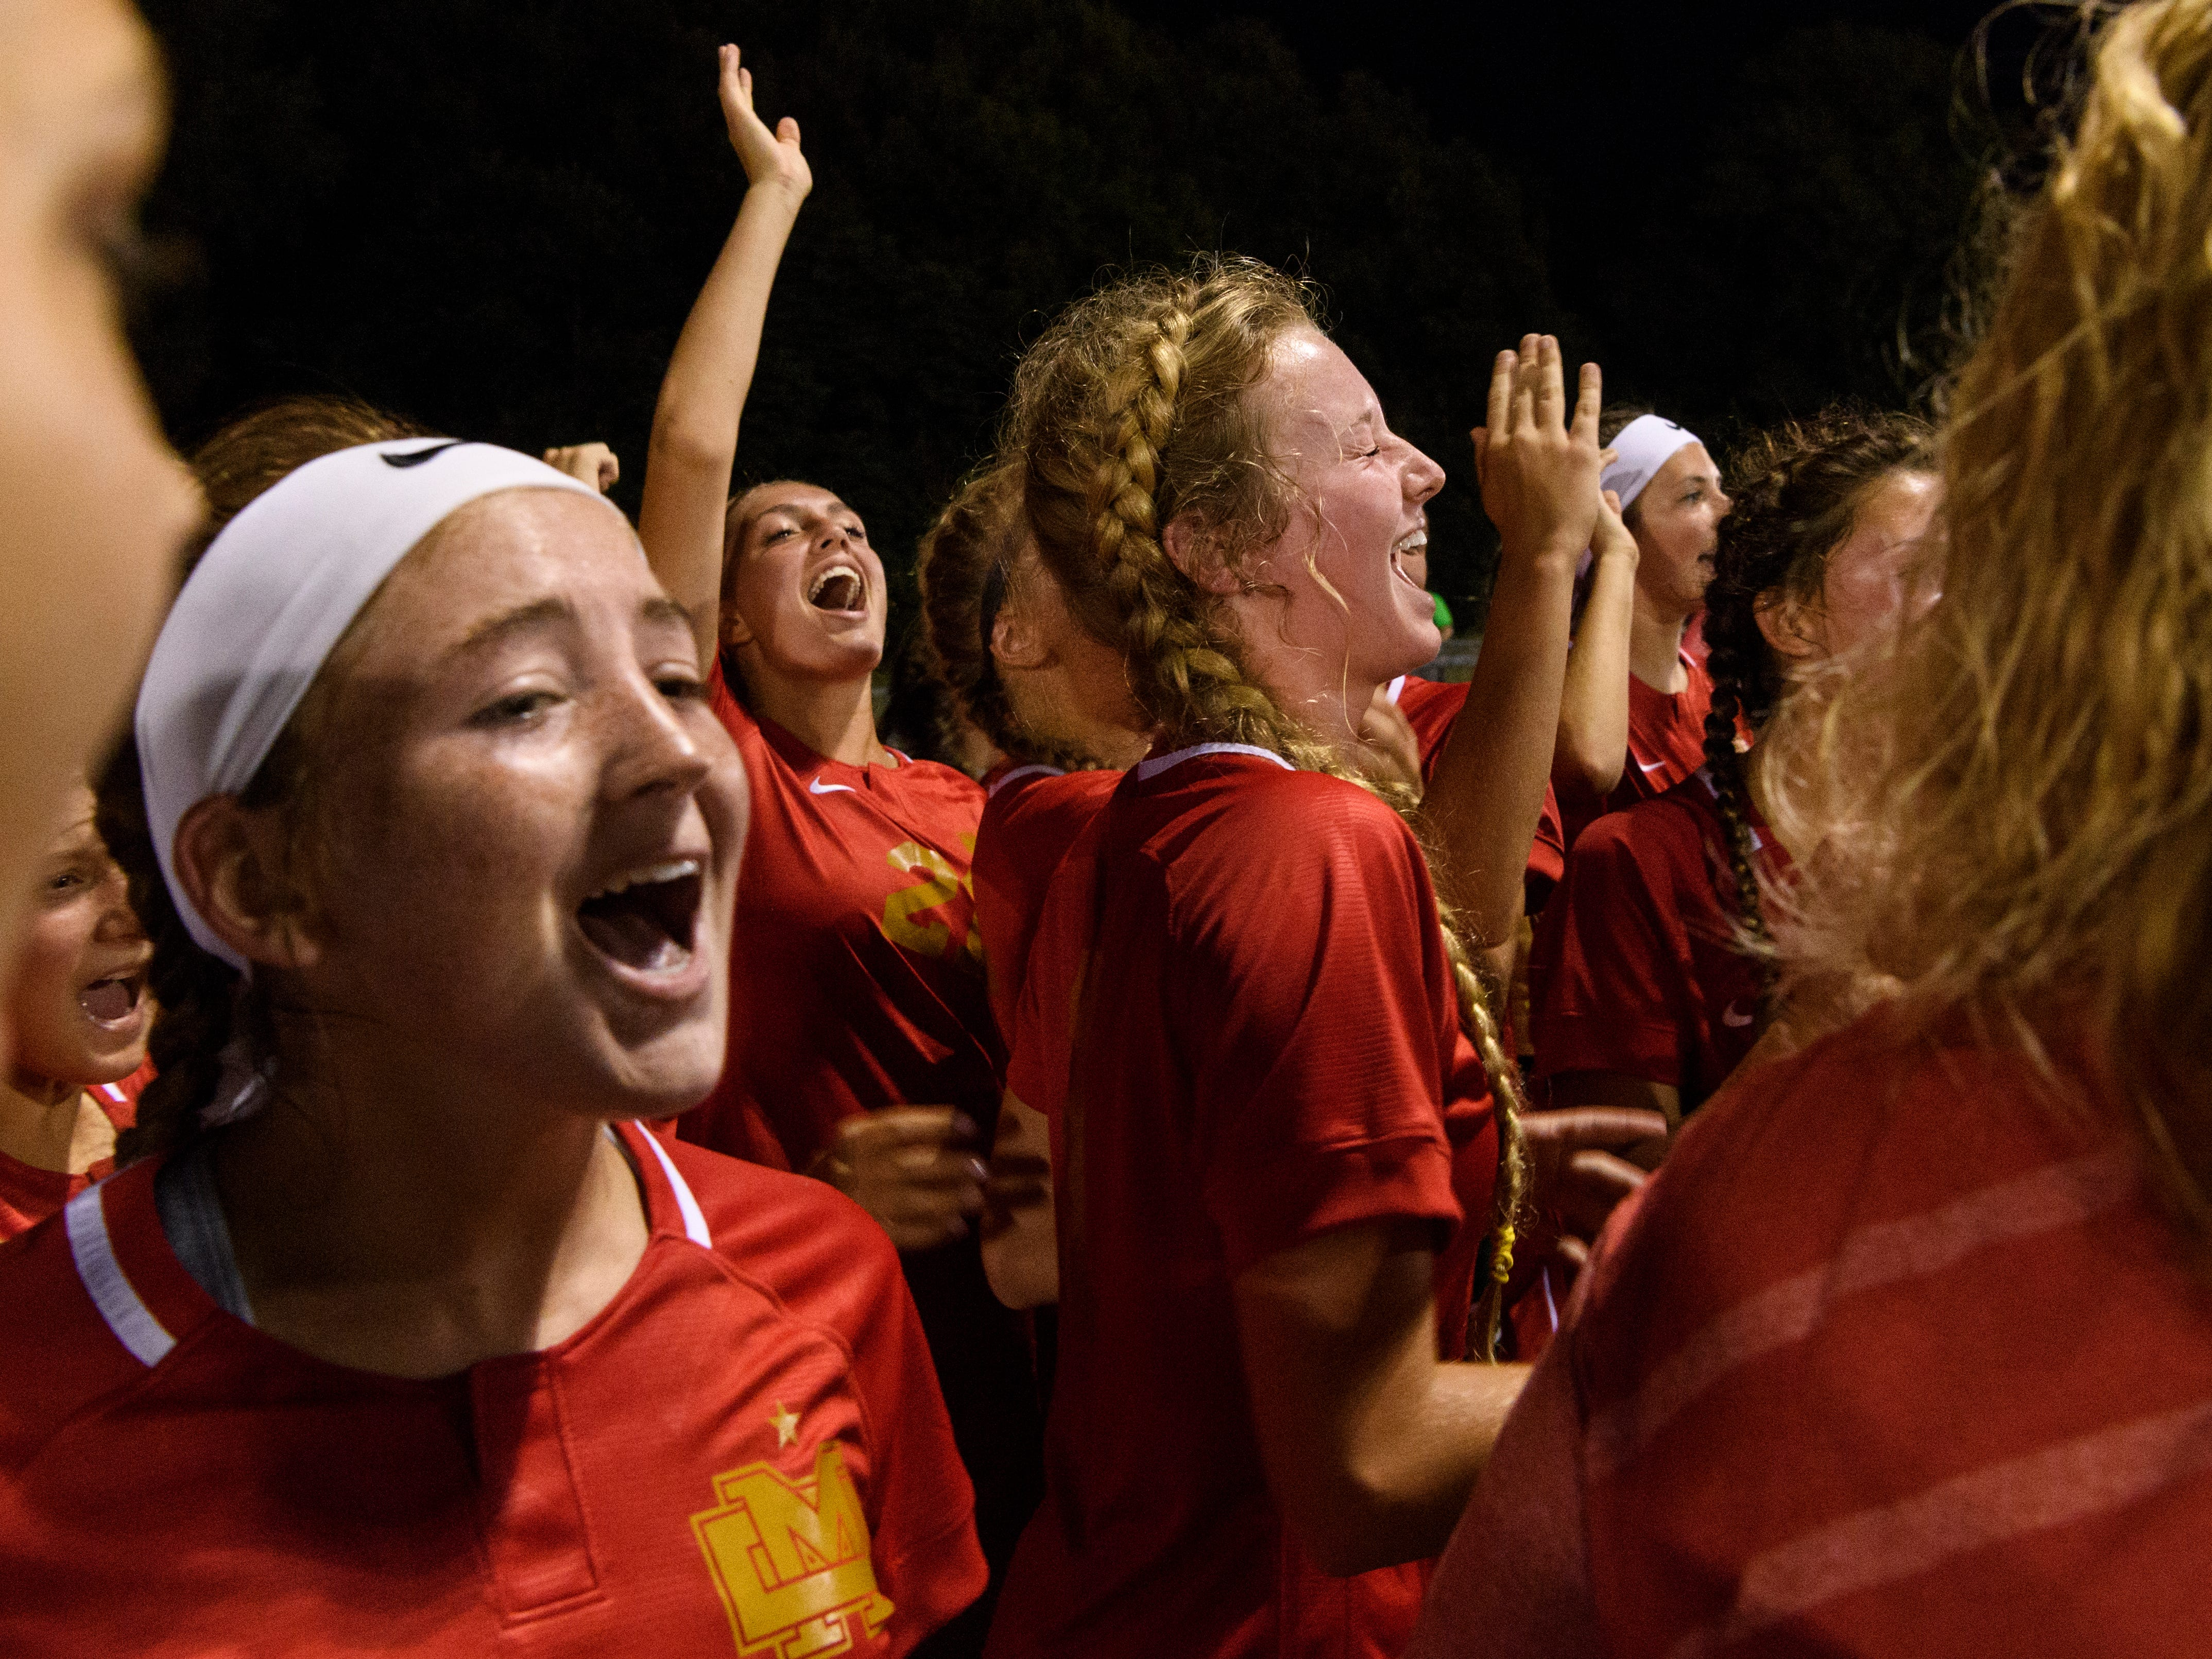 The Mater Dei Wildcats cheer together during a halftime huddle against the Memorial Tigers at the EVSC Soccer Fields in Evansville, Ind., Monday, Aug. 20, 2018. The Tigers defeated the Wildcats 4-0.